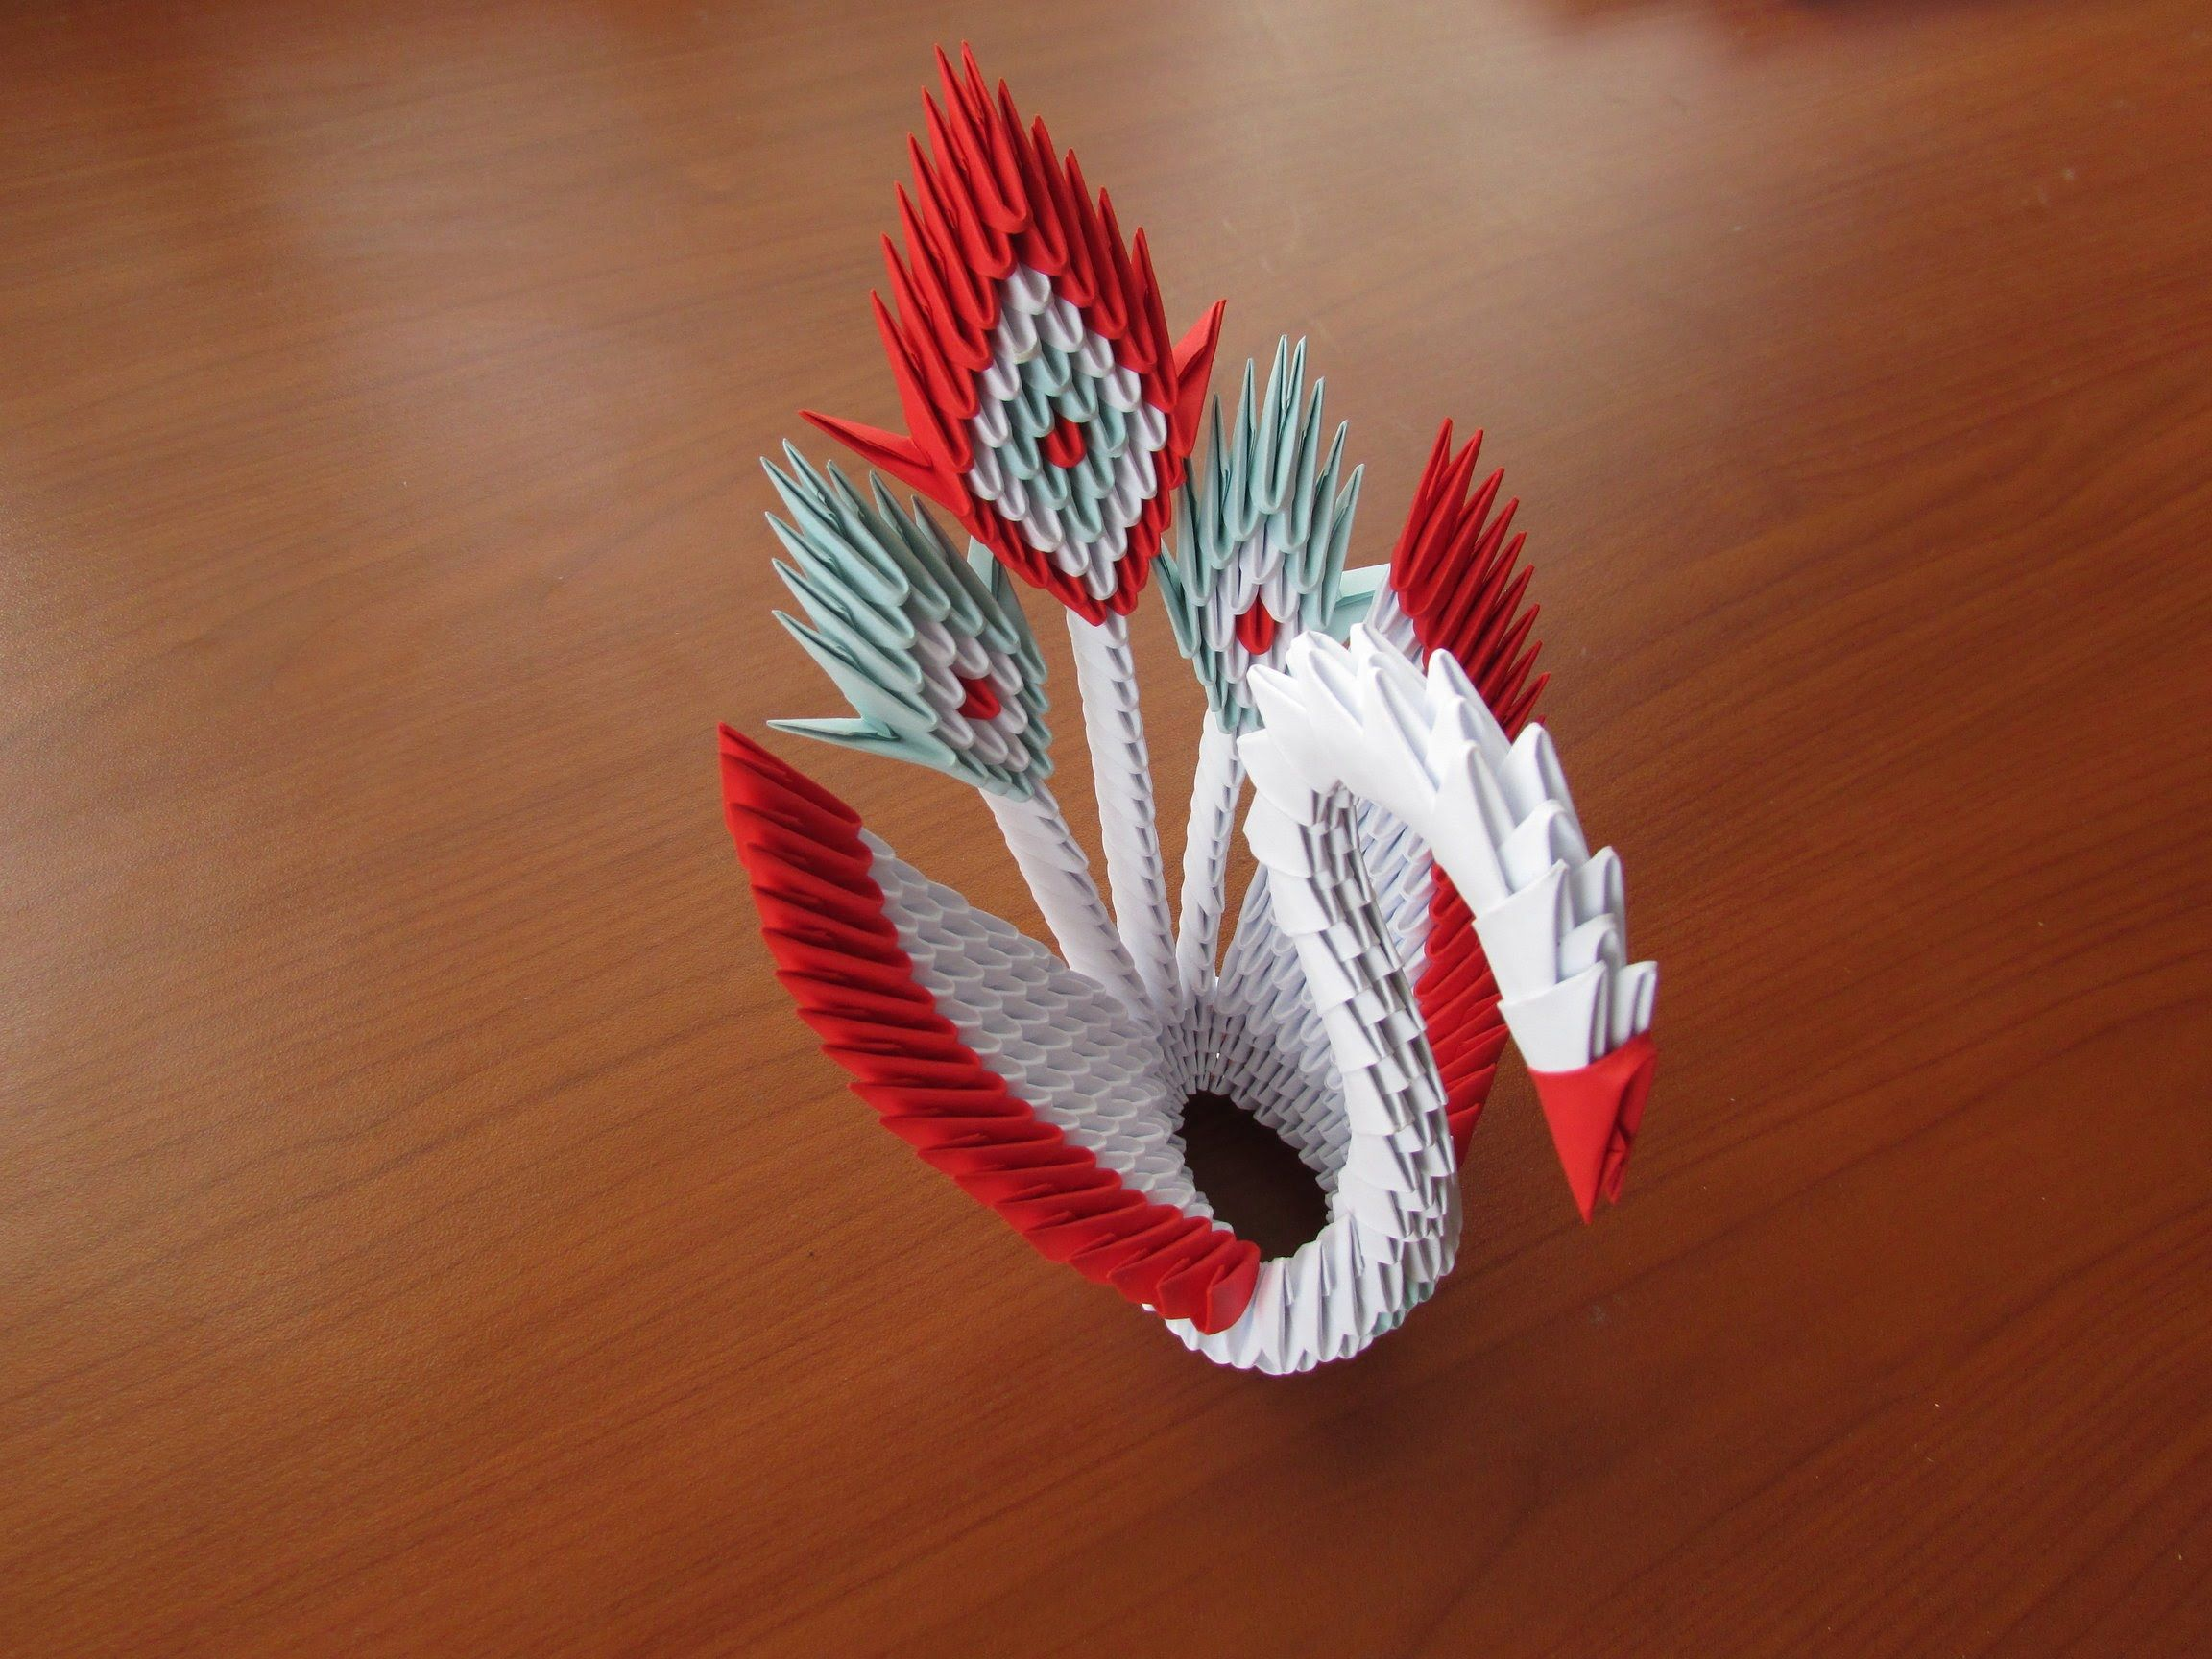 3D Origami Peacock Tutorial - Published on Dec 24, 2014 ... - photo#23